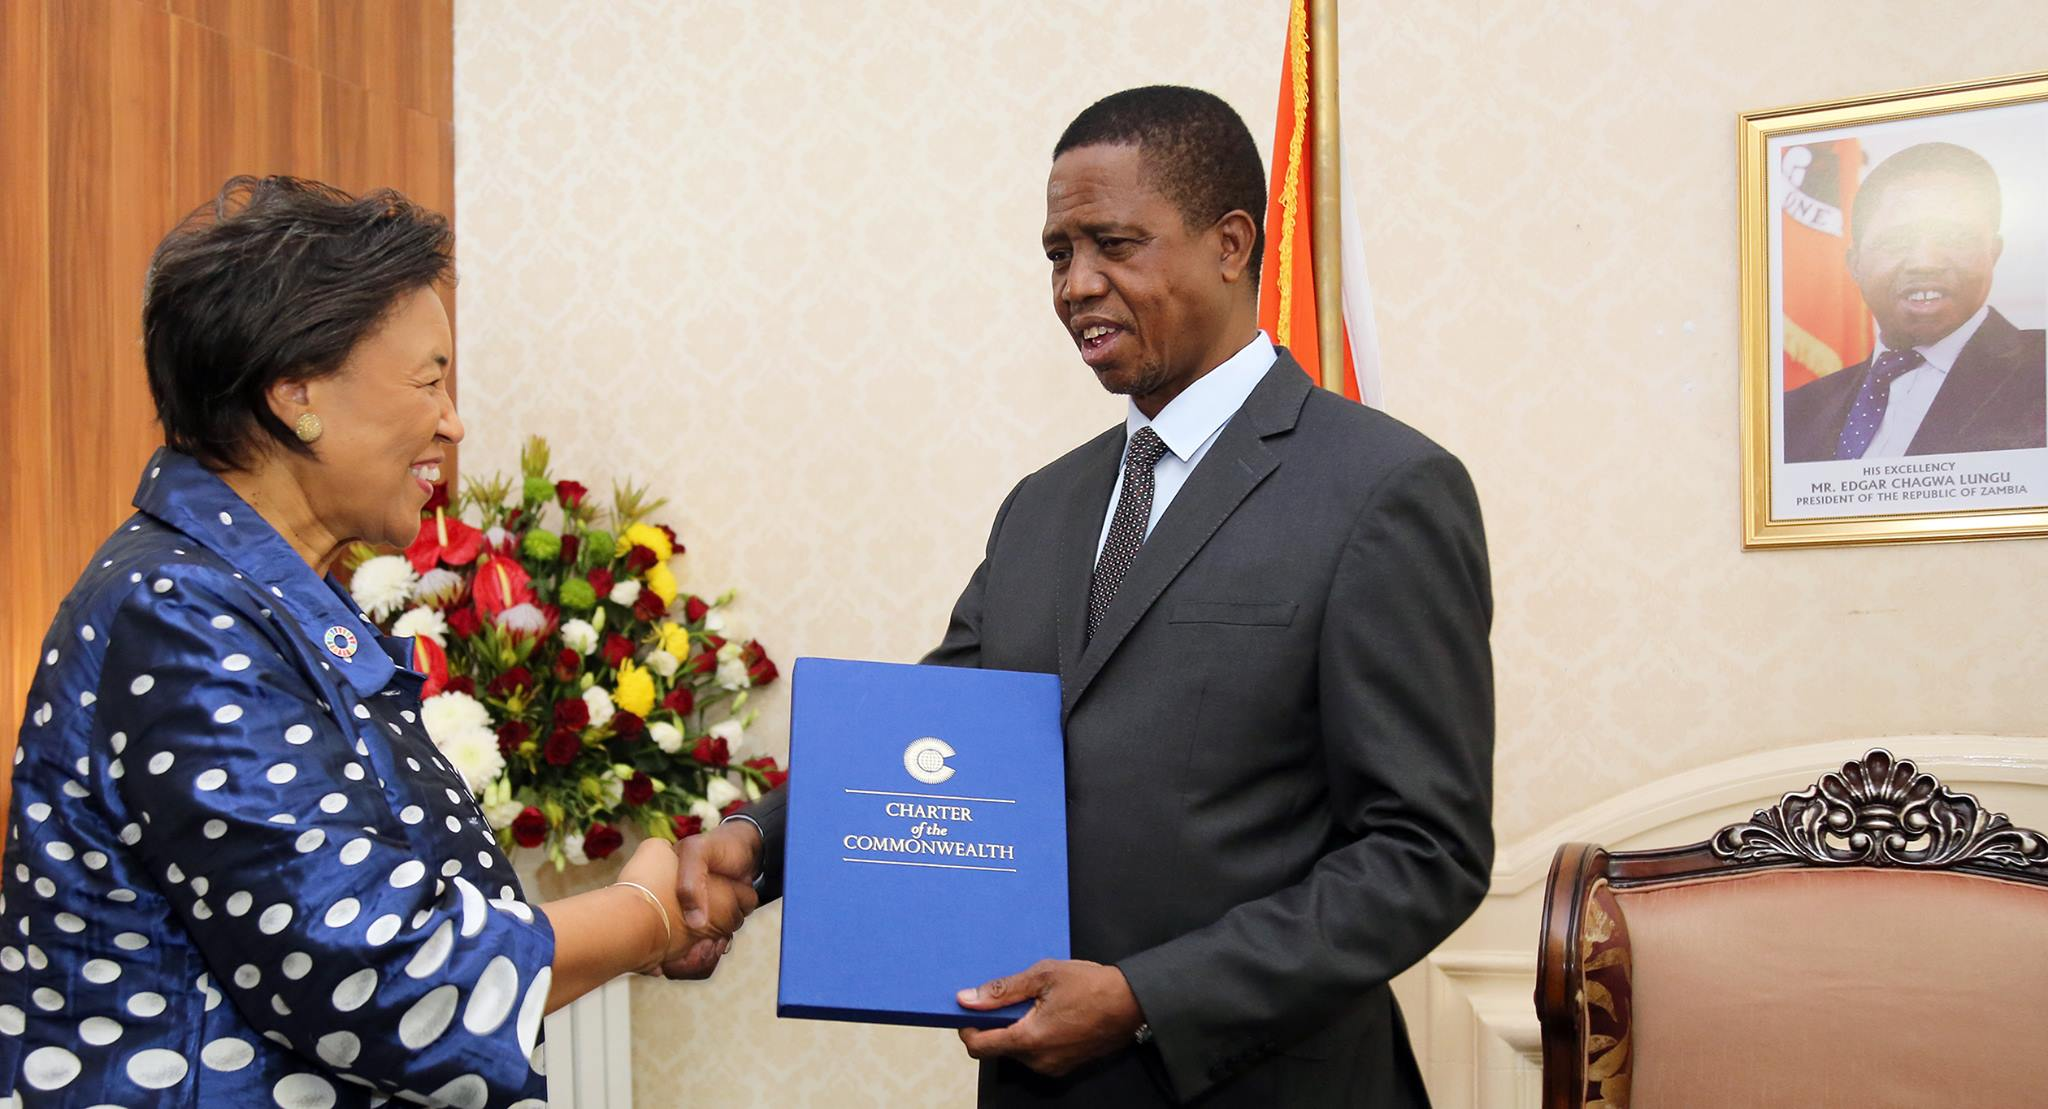 Zambia's President, opposition leader agree to peaceful dialogue